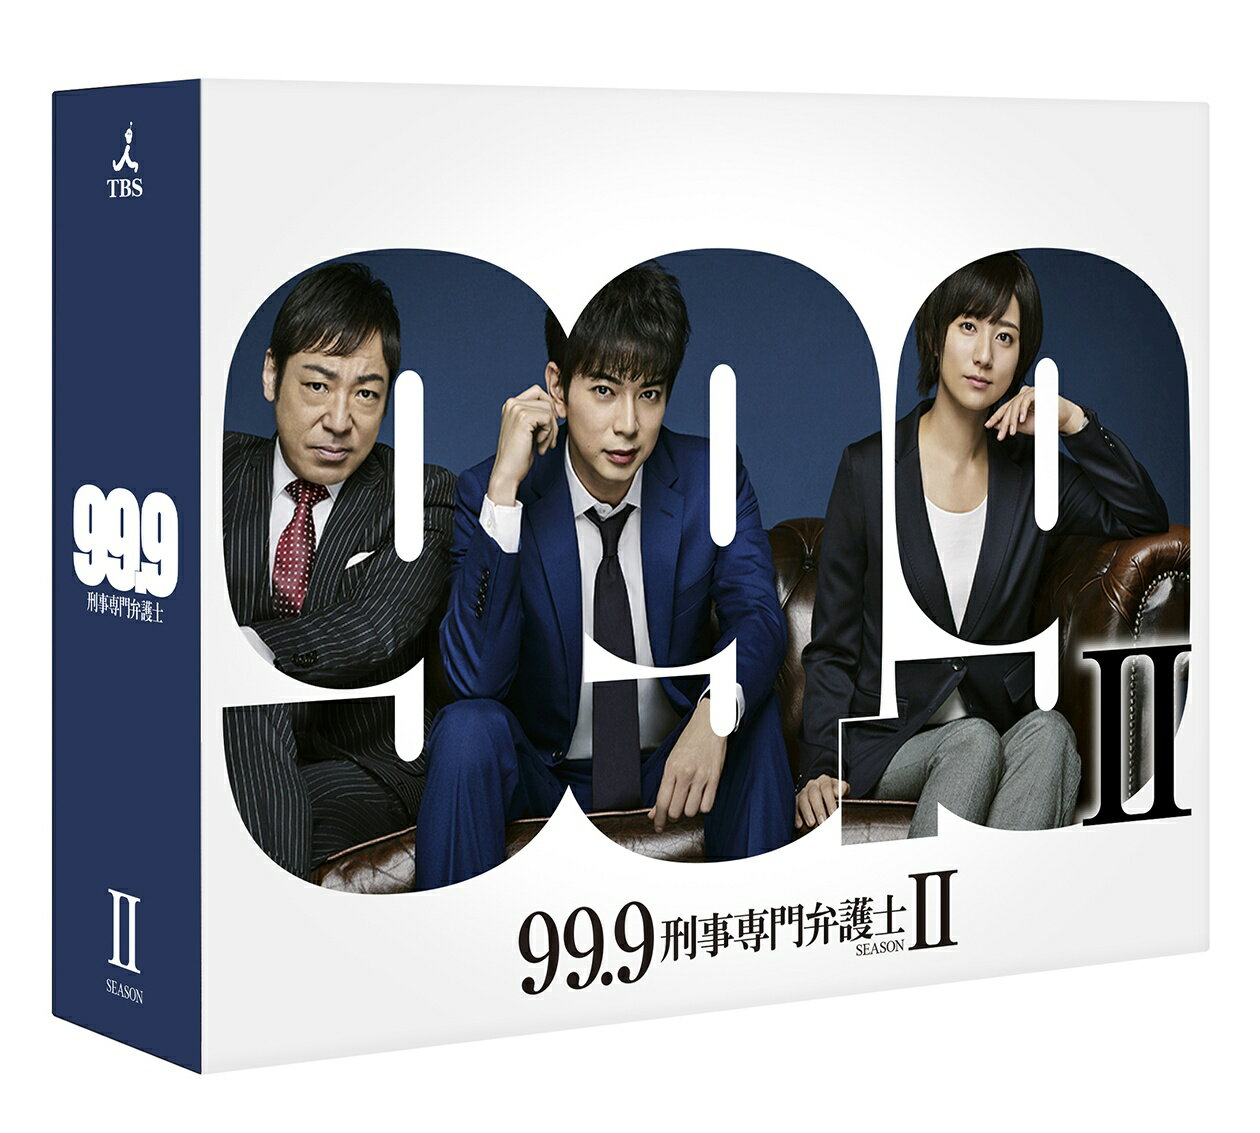 99.9-刑事専門弁護士ー SEASONII Blu-ray BOX【Blu-ray】